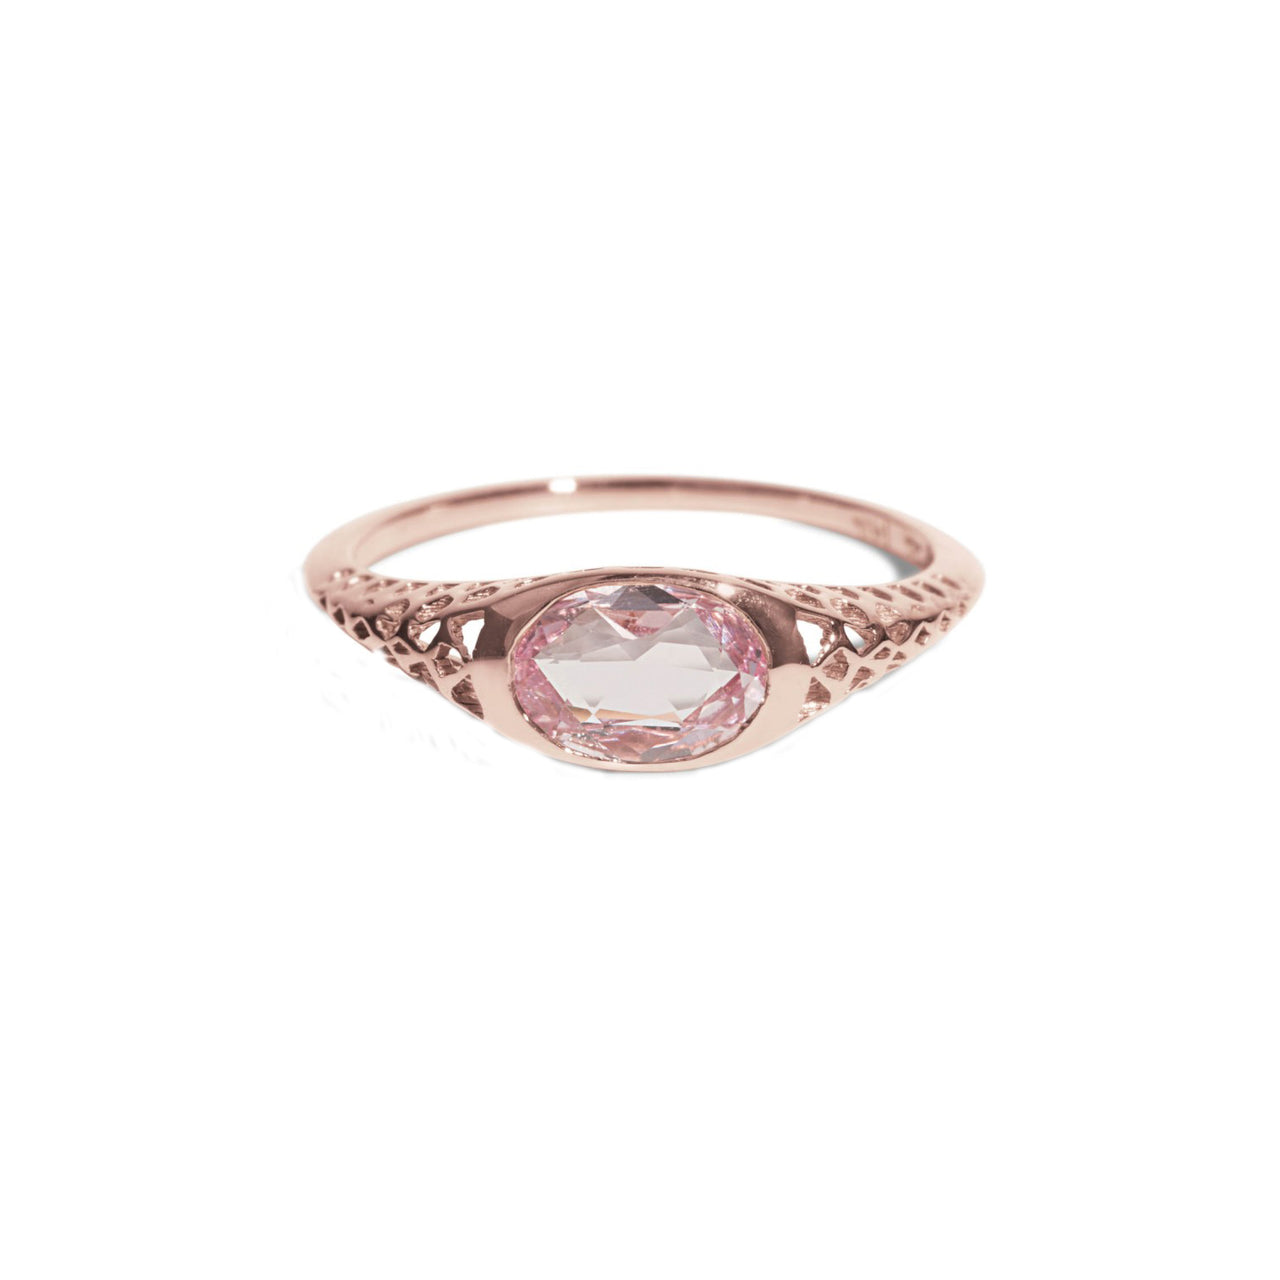 Filigree Rose Cut Pink Sapphire Oval Ring